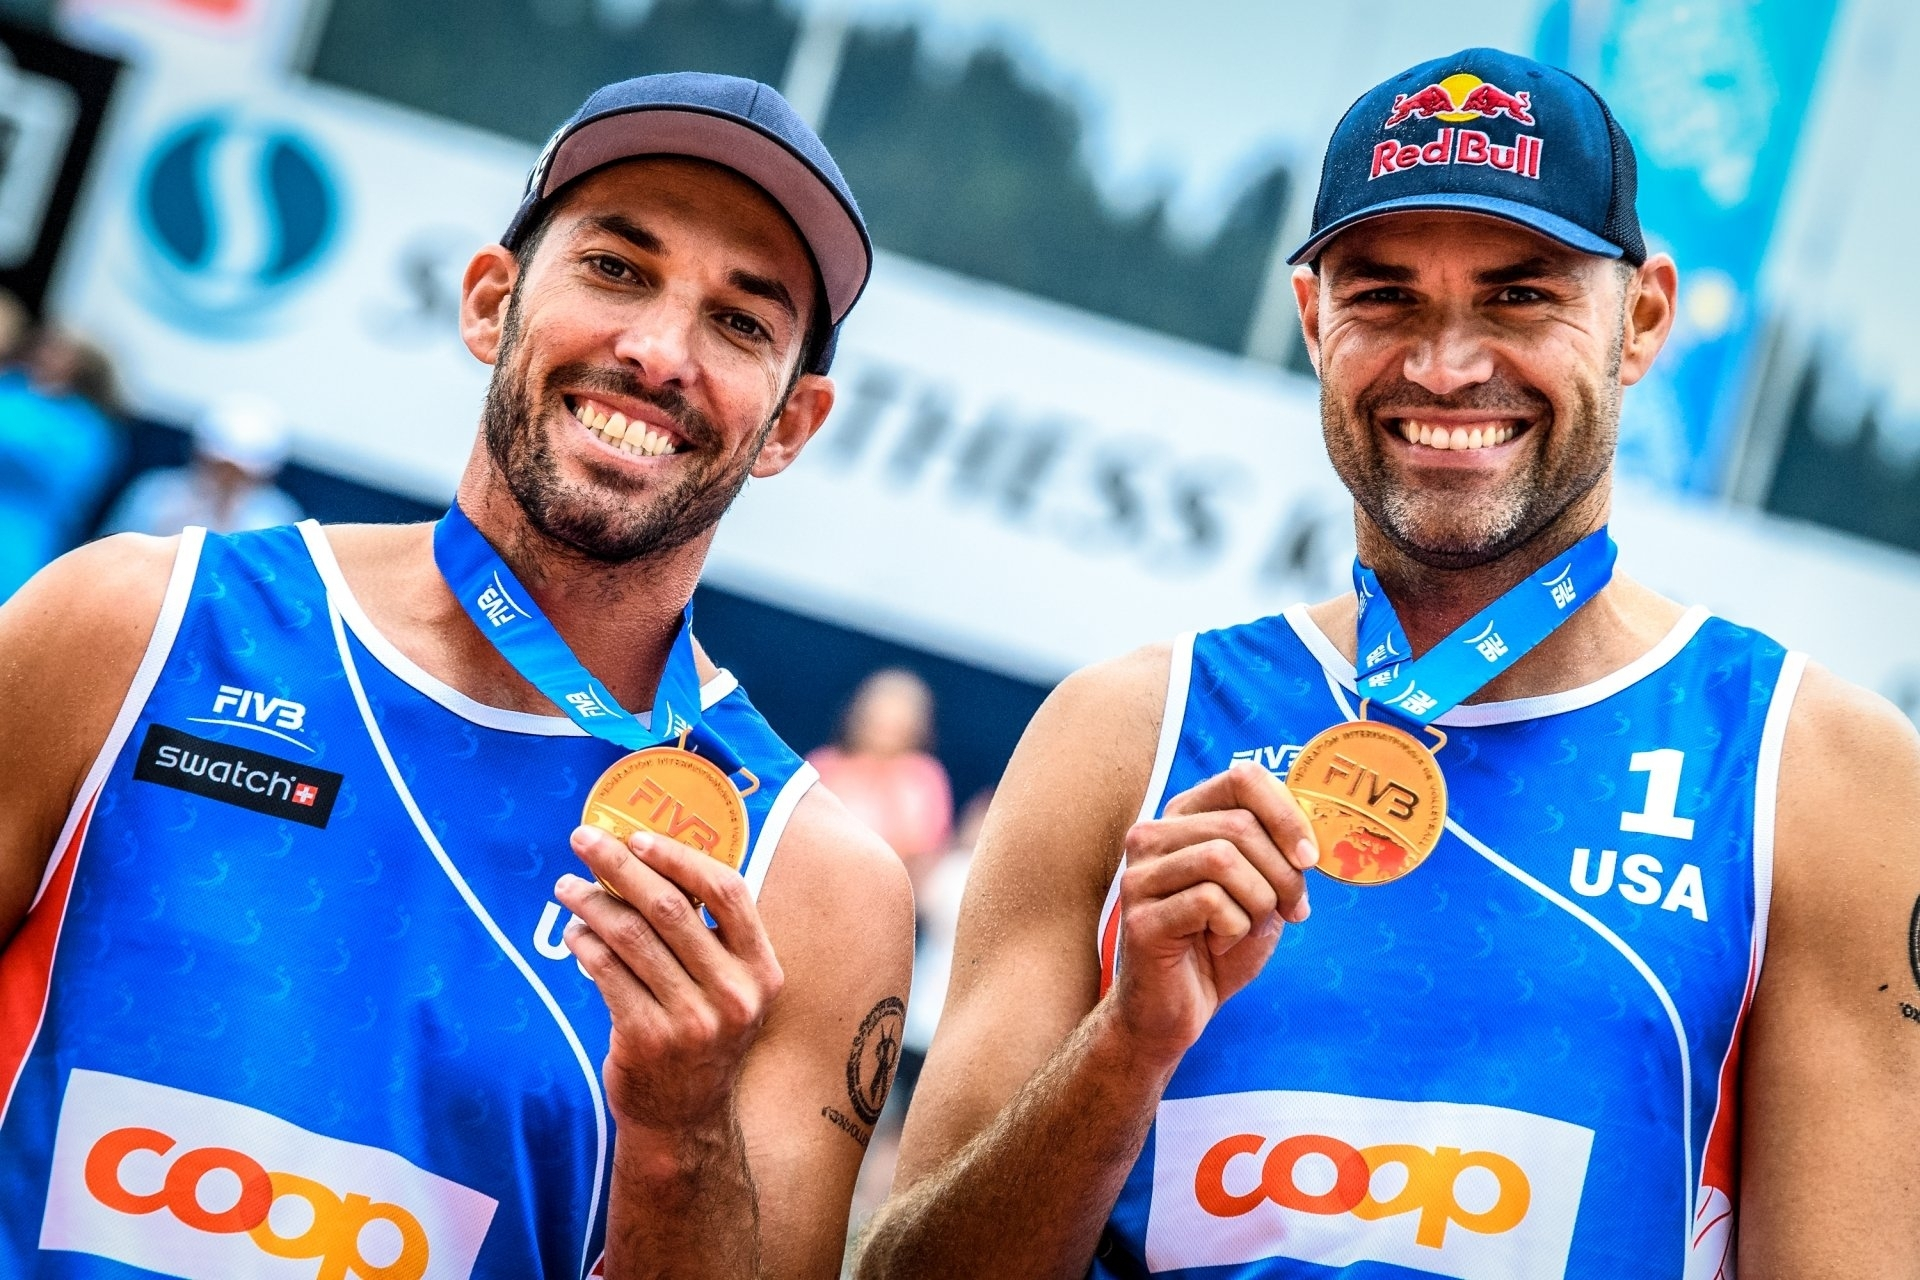 Nick Lucena (left) and Phil Dalhausser have reached the Gstaad Major final two years in a row - and captured gold last year